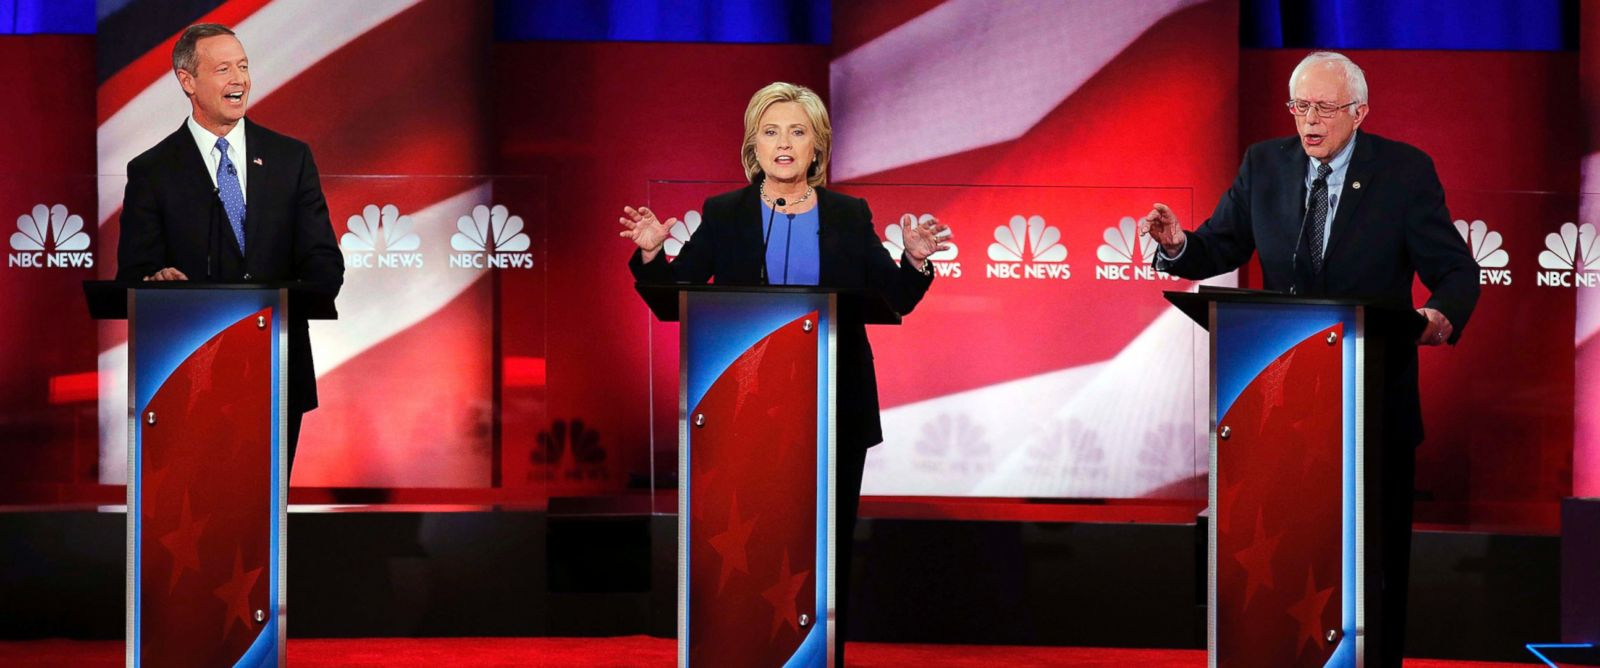 PHOTO: Democratic presidential candidates former Maryland Gov. Martin OMalley, Hillary Clinton, and Sen. Bernie Sanders during the NBC, YouTube Democratic presidential debate at the Gaillard Center on Jan. 17, 2016, in Charleston, S.C.